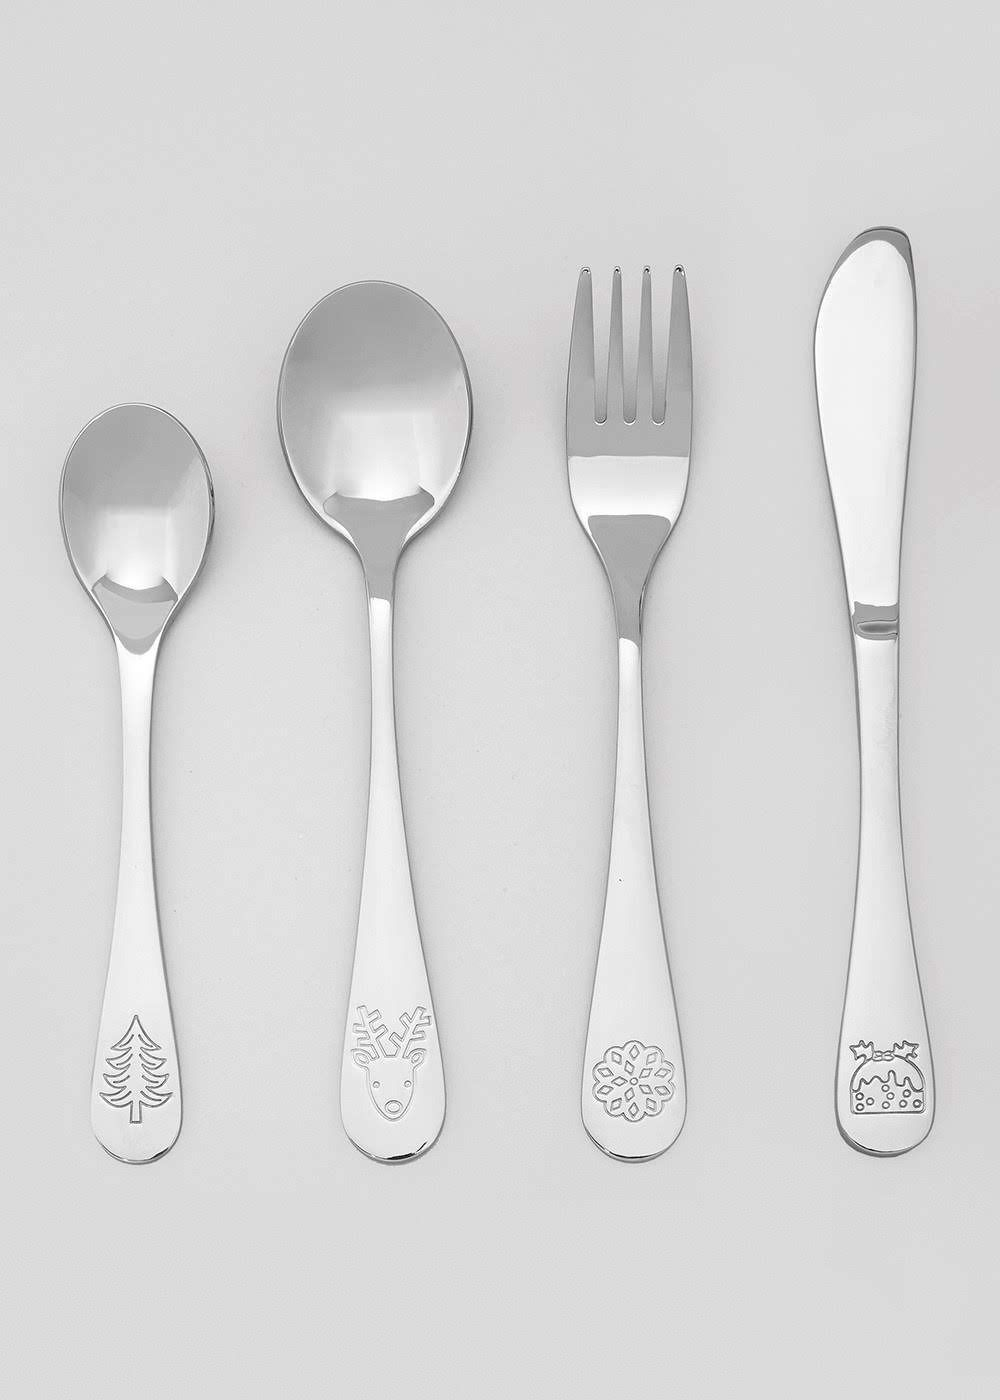 Christmas Shop With Images Cutlery Set Christmas Shopping Shop Decoration